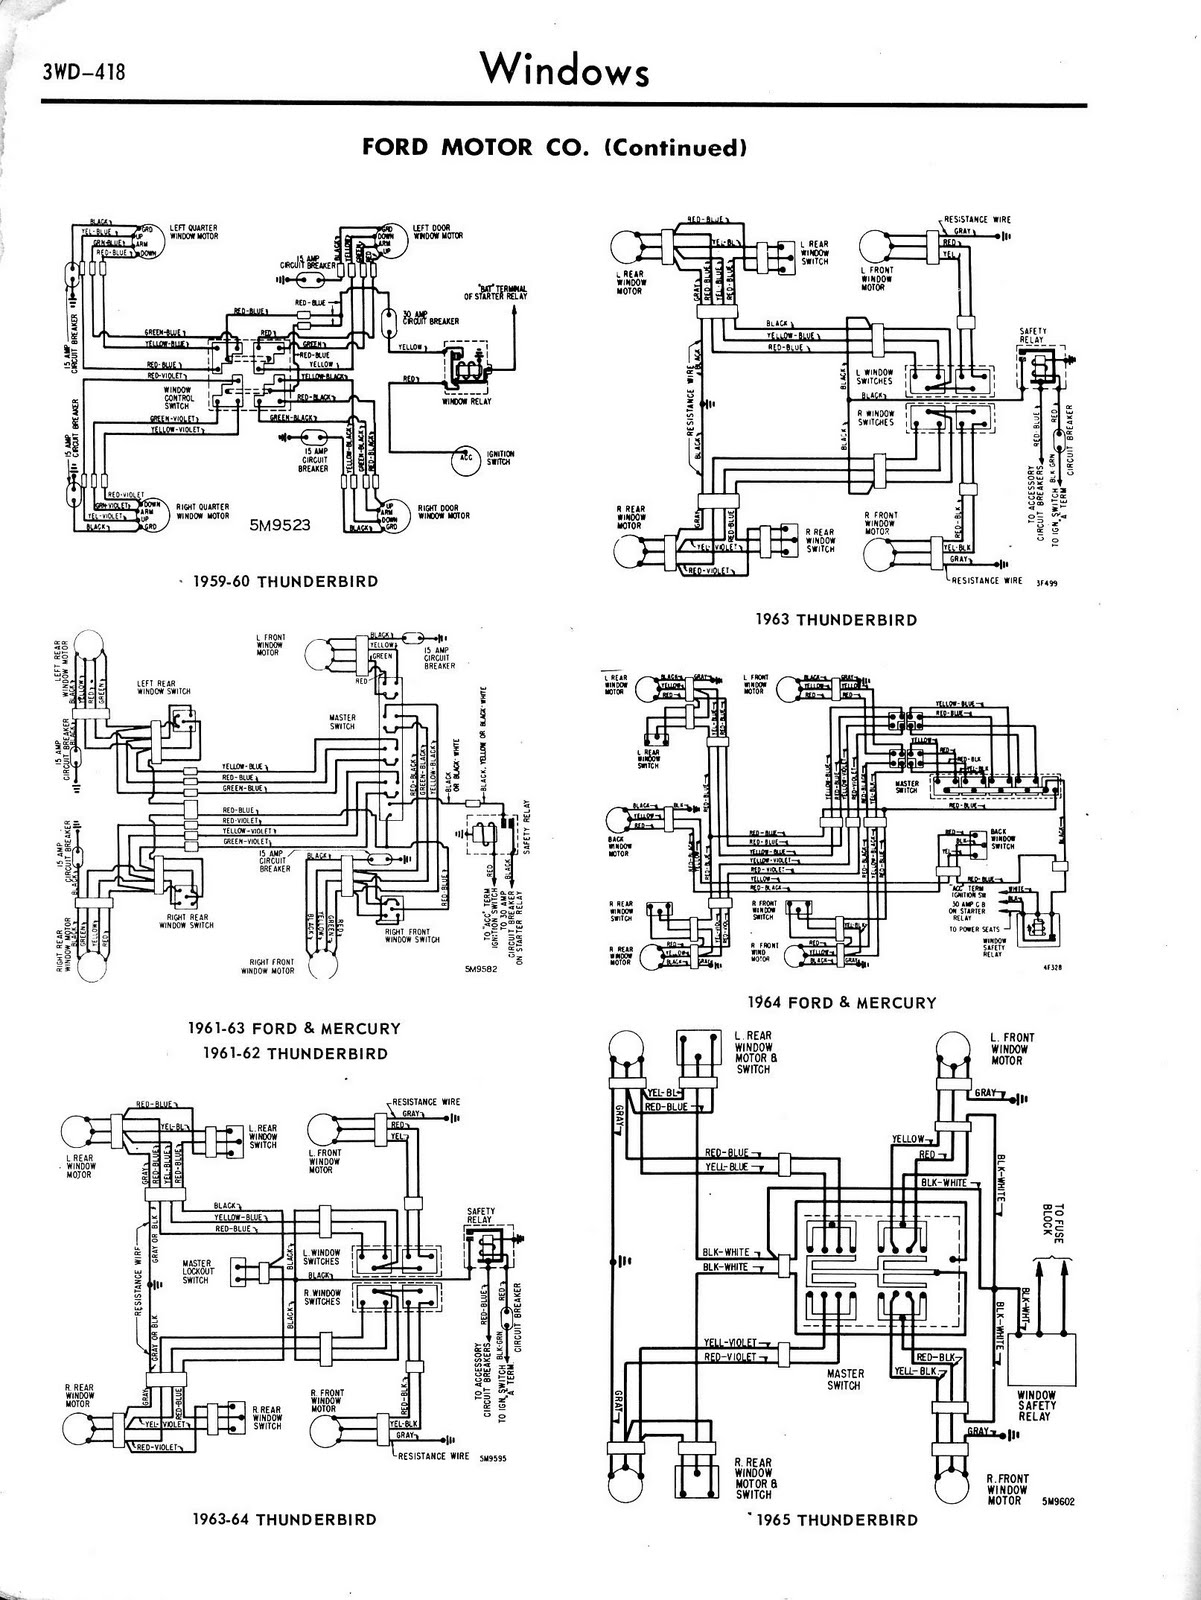 Ford Thunderbird Window Controls Diagram on 1966 ford thunderbird power window wiring diagram